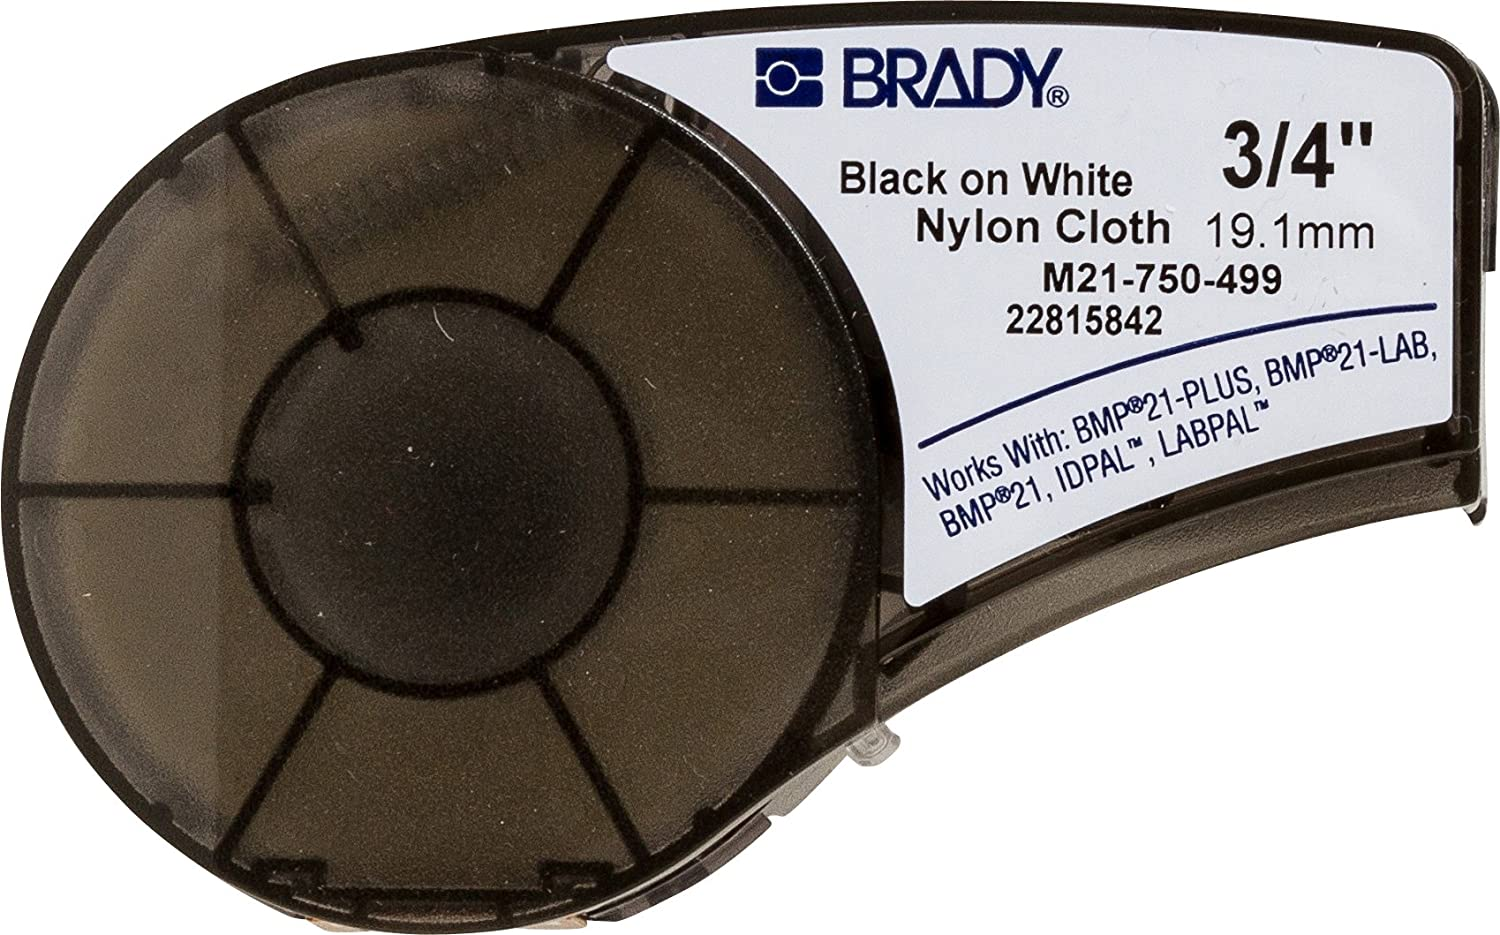 "Brady High Adhesion Cloth Label Tape (M21-750-499) - Black On White Nylon - Compatible with BMP21-PLUS, ID PAL, and LABPAL Printers - 16' Length, 0.75"" Width"